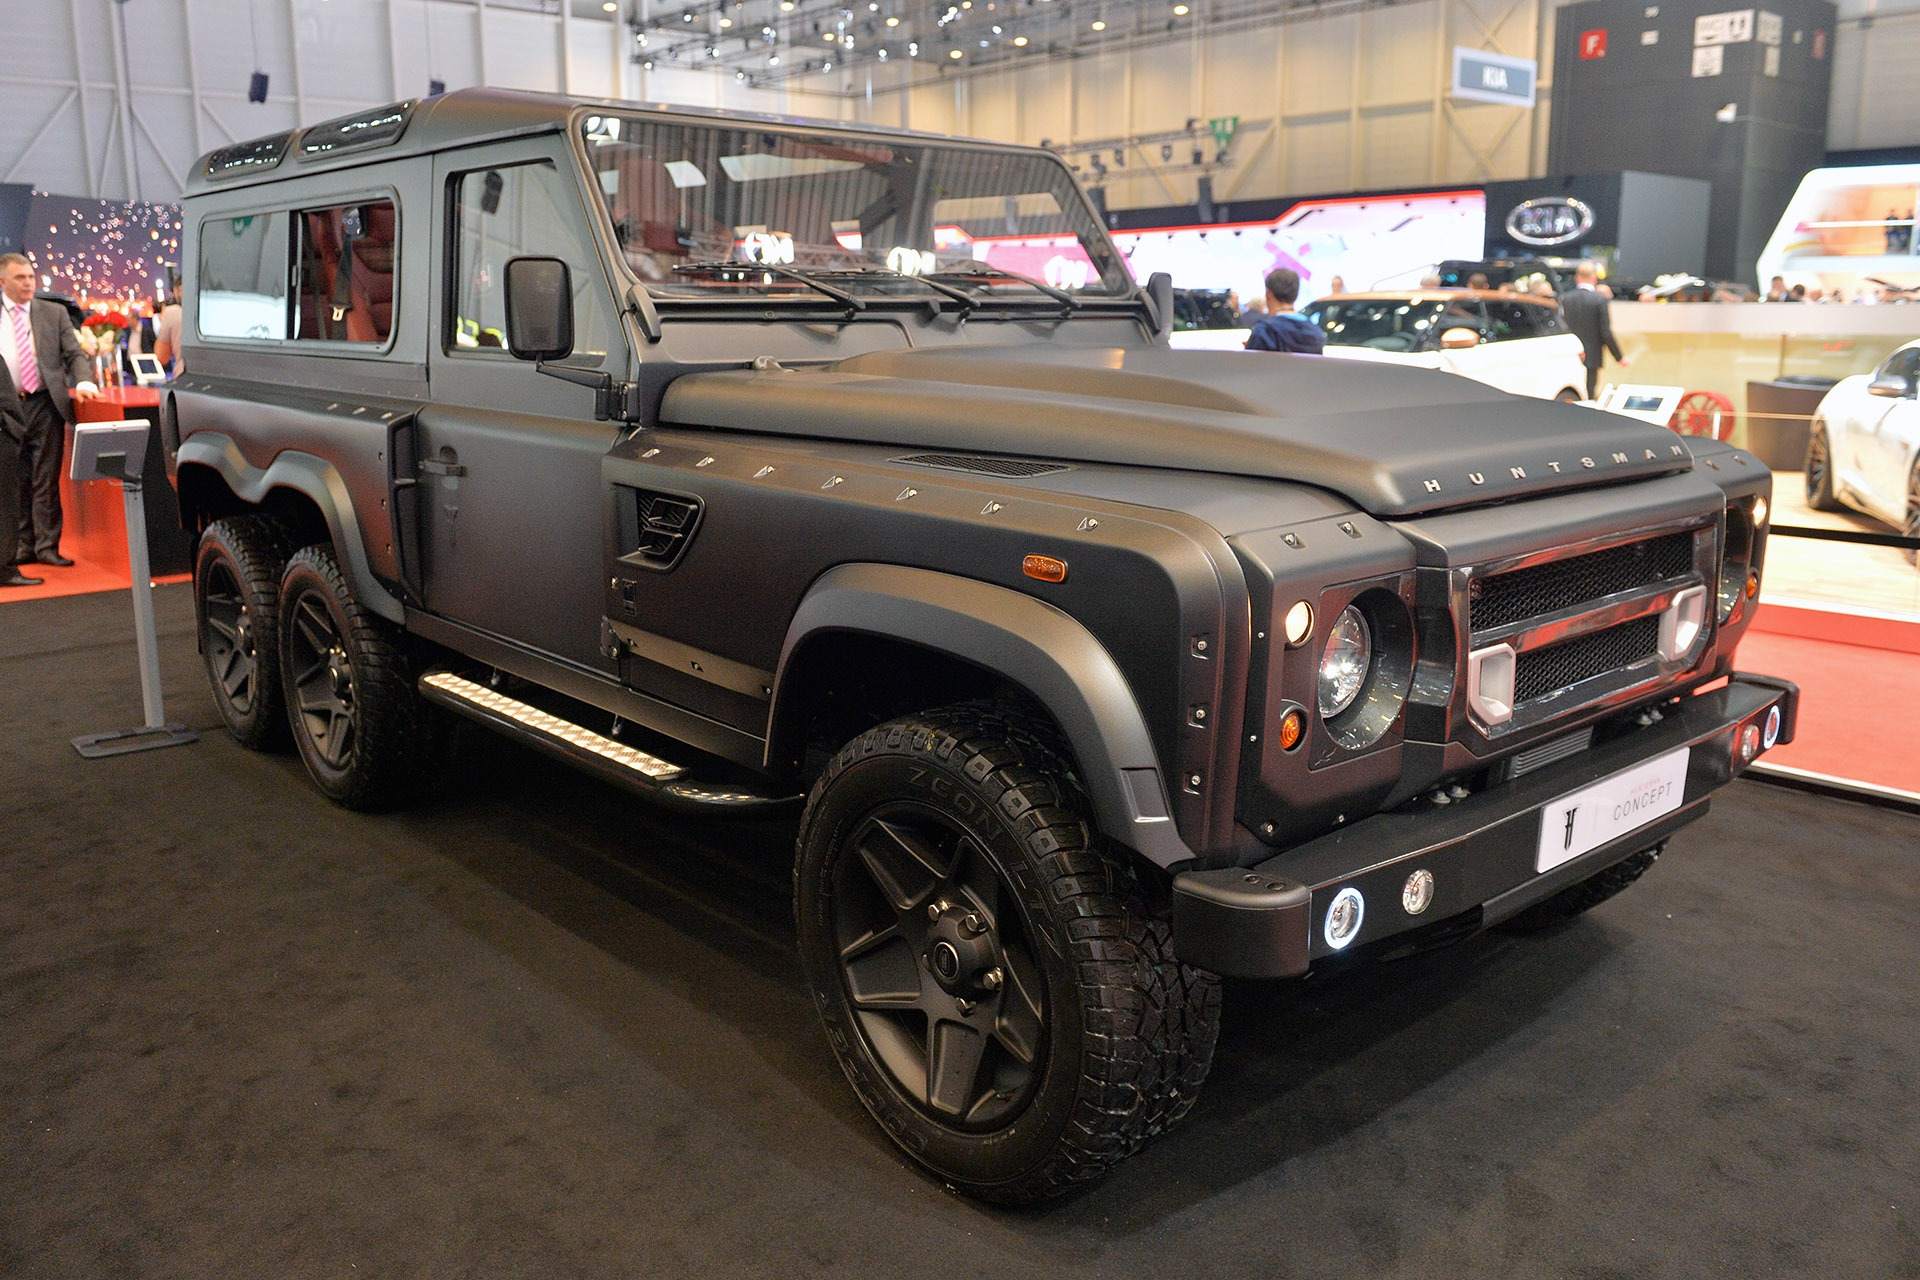 01-kahn-flying-huntsman-110-wb-6x6-geneva-1.jpg